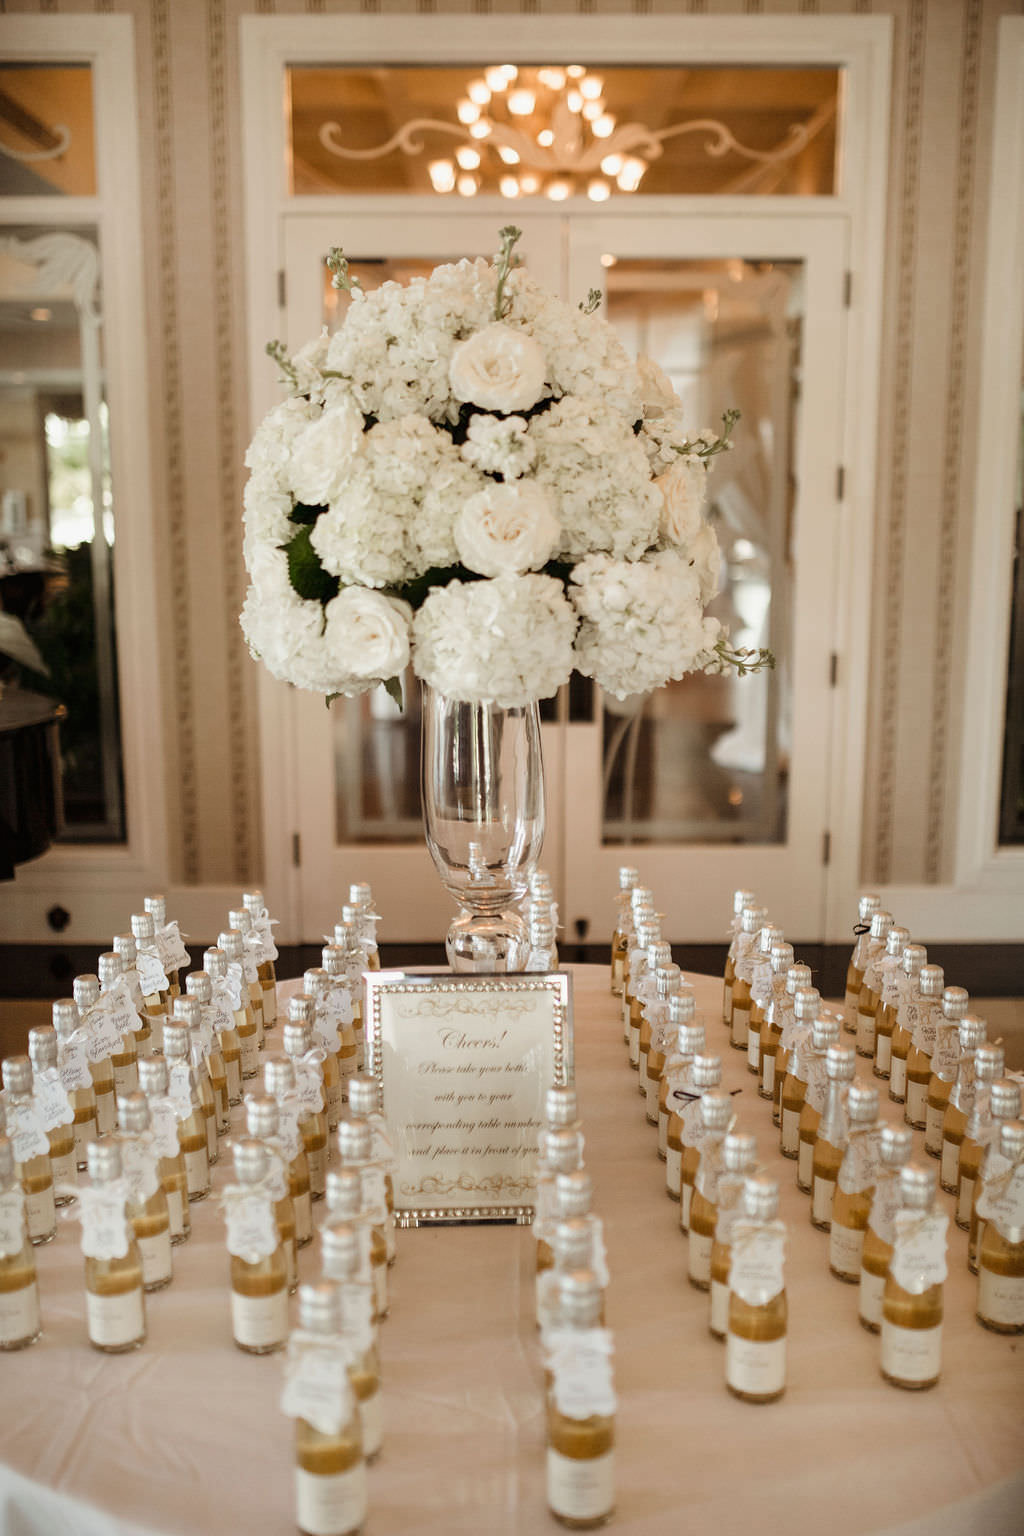 Classic, Formal Wedding Reception Welcome Table, Tall Glass Vase with White, Ivory, Hydrangeas, Roses Floral Arrangement, Personalized Champagne Bottle Seating Cards